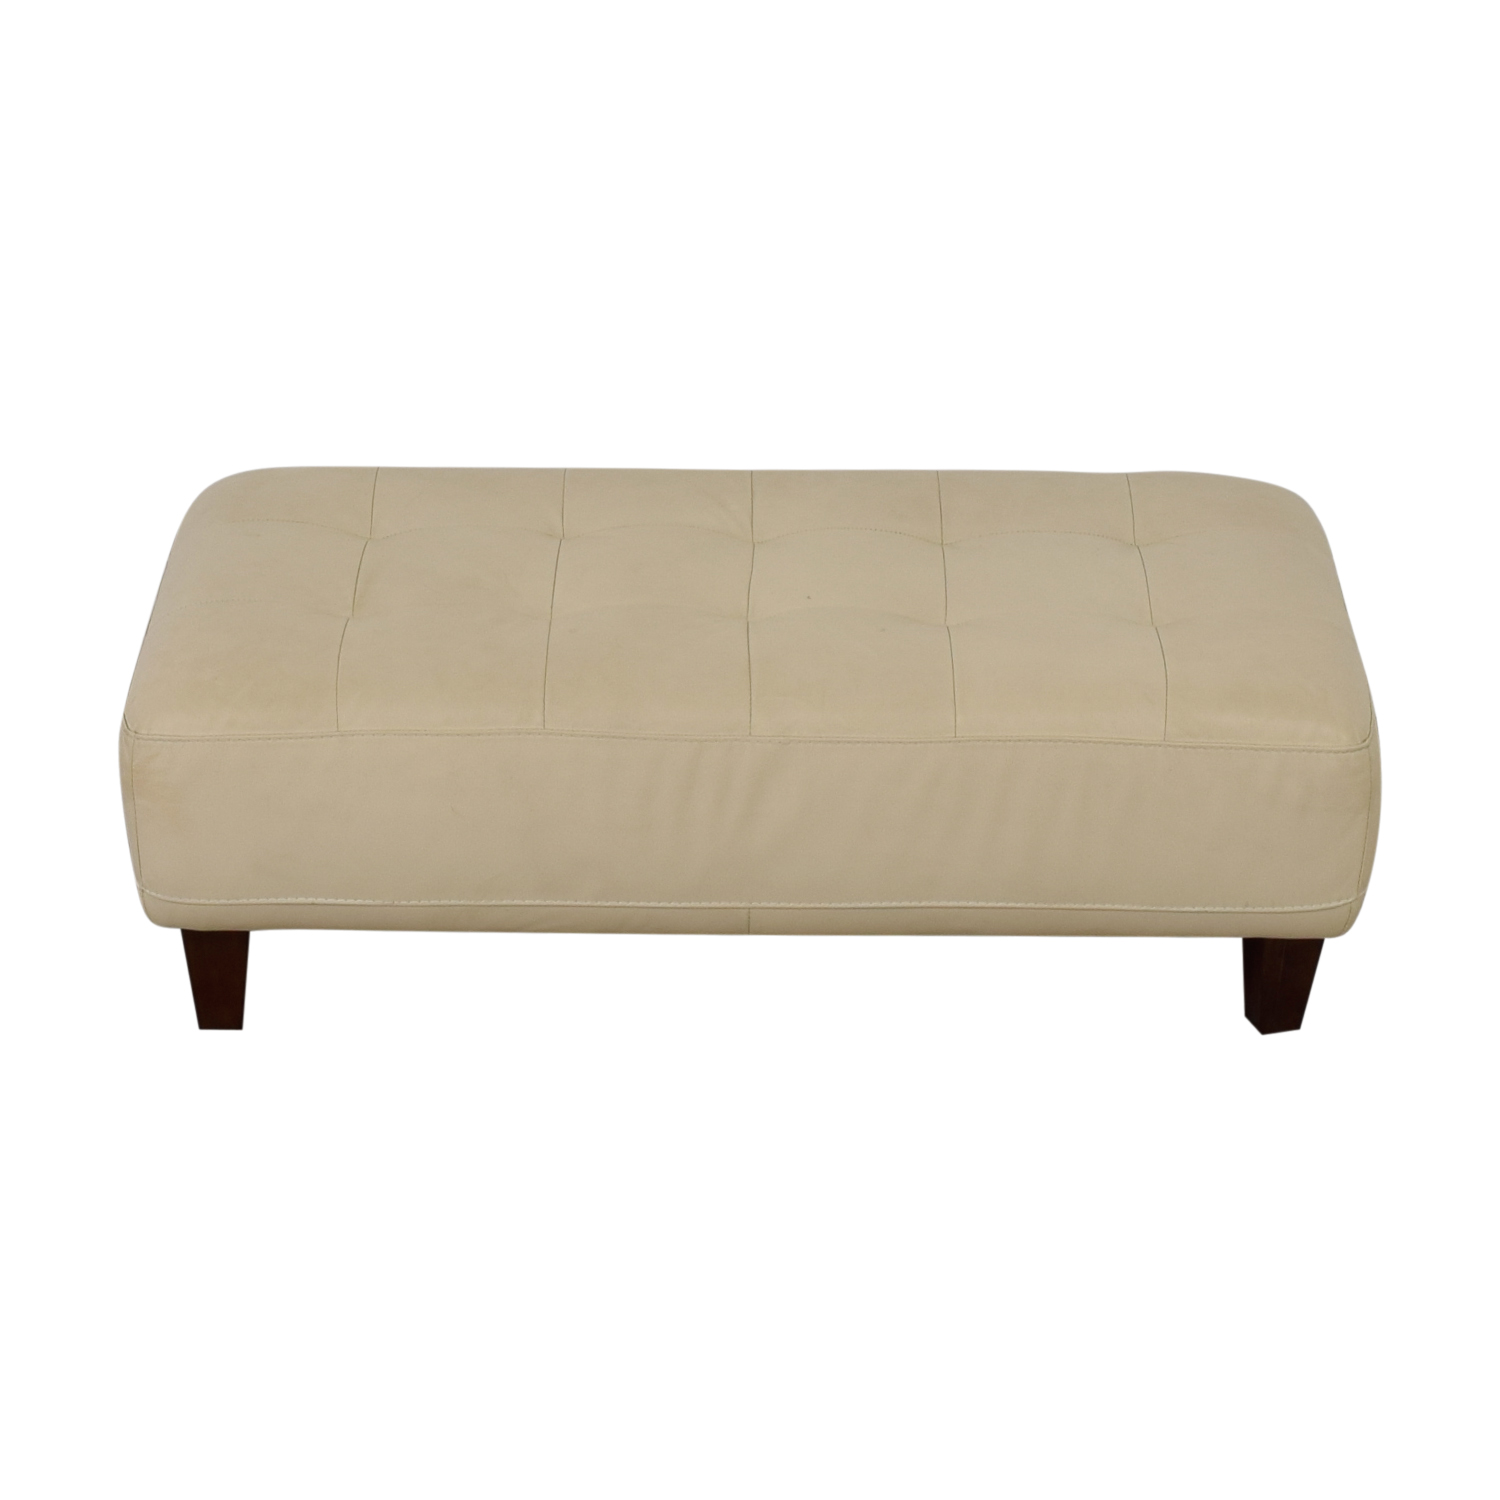 buy Chateau d'Ax Eggshell Leather Ottoman Bench Chateau d'Ax